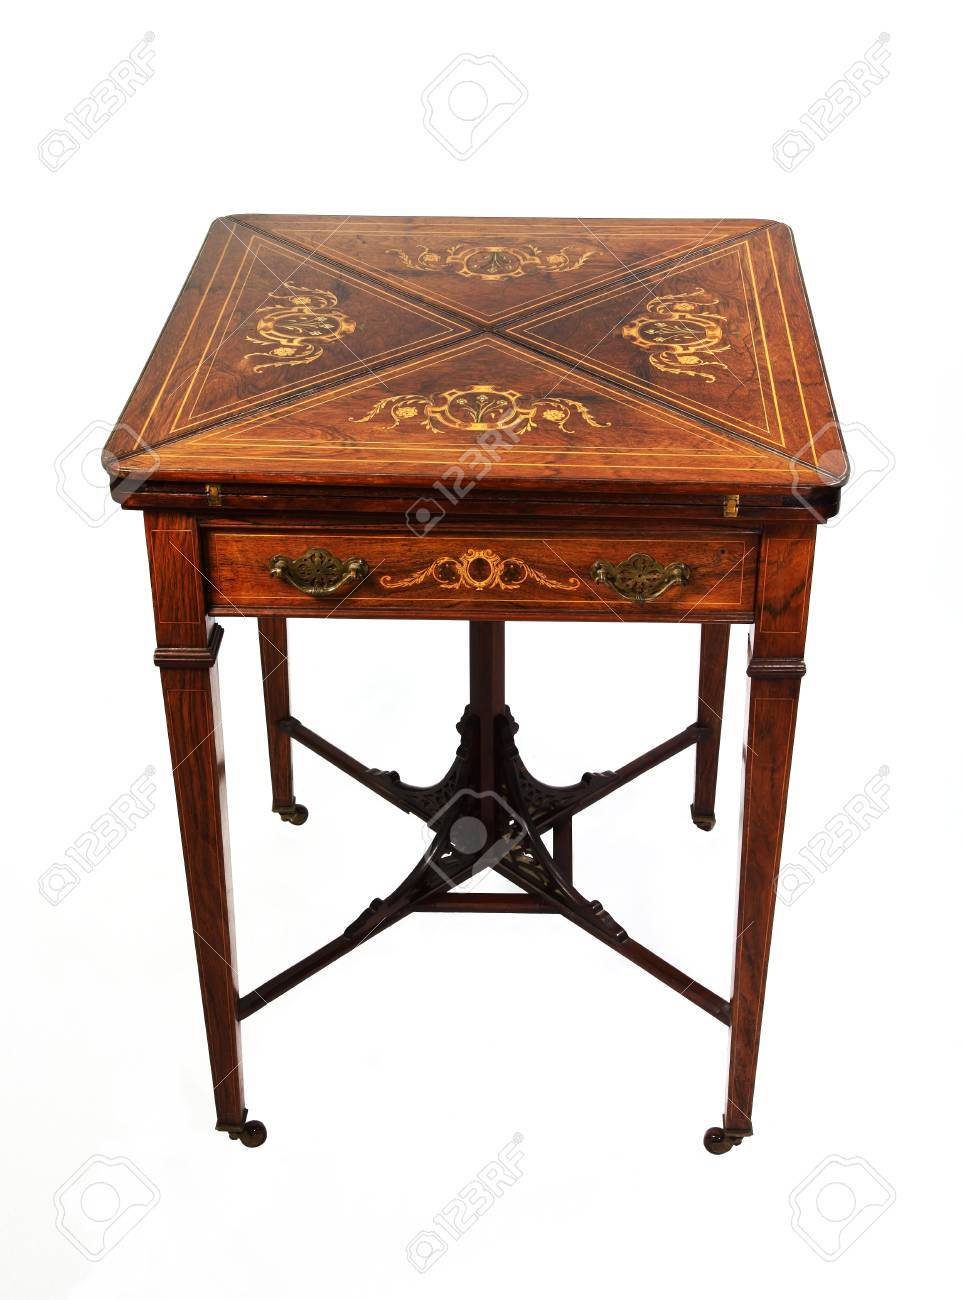 An Antique Inlaid Rosewood Envelope Card Table Photographed Over